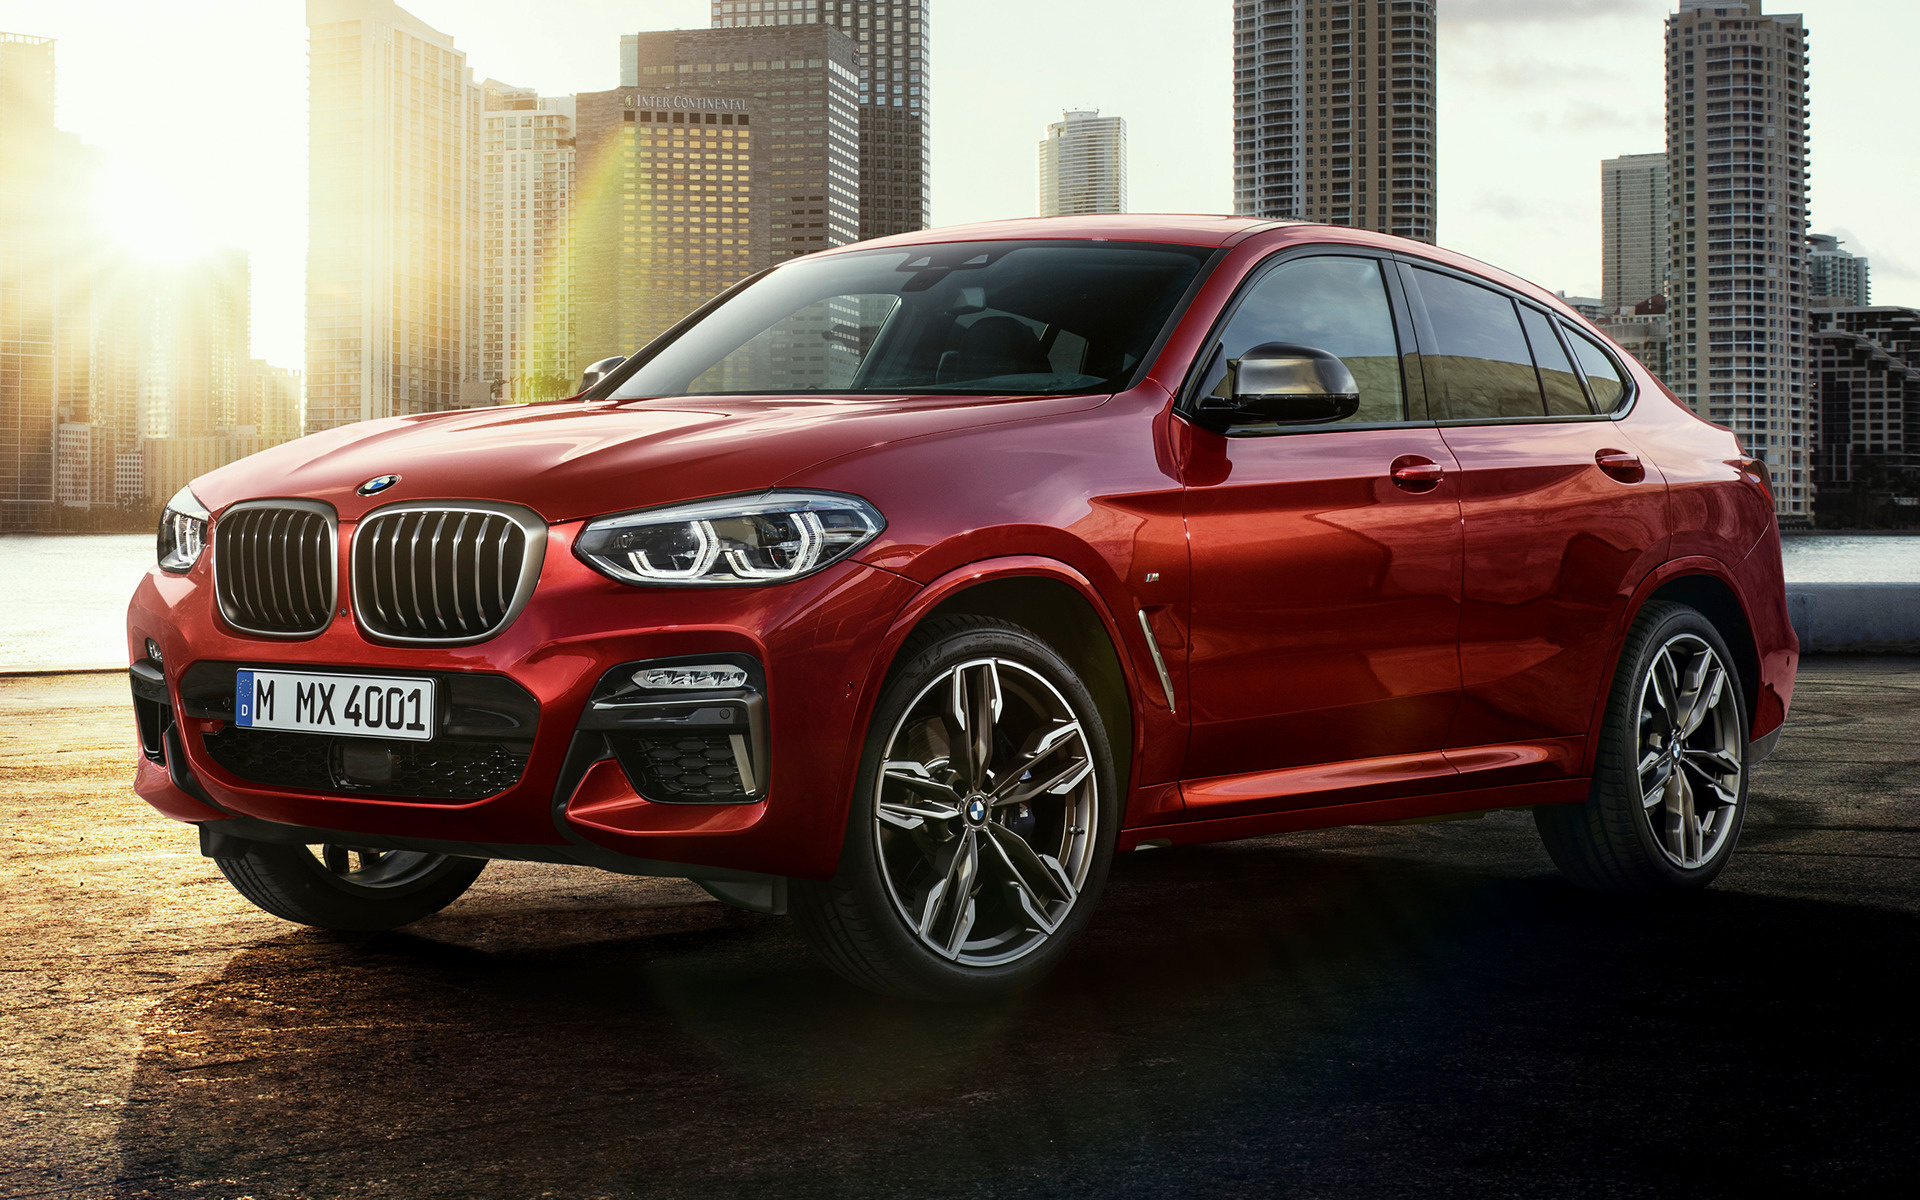 1920x1200 - BMW X4 Wallpapers 2